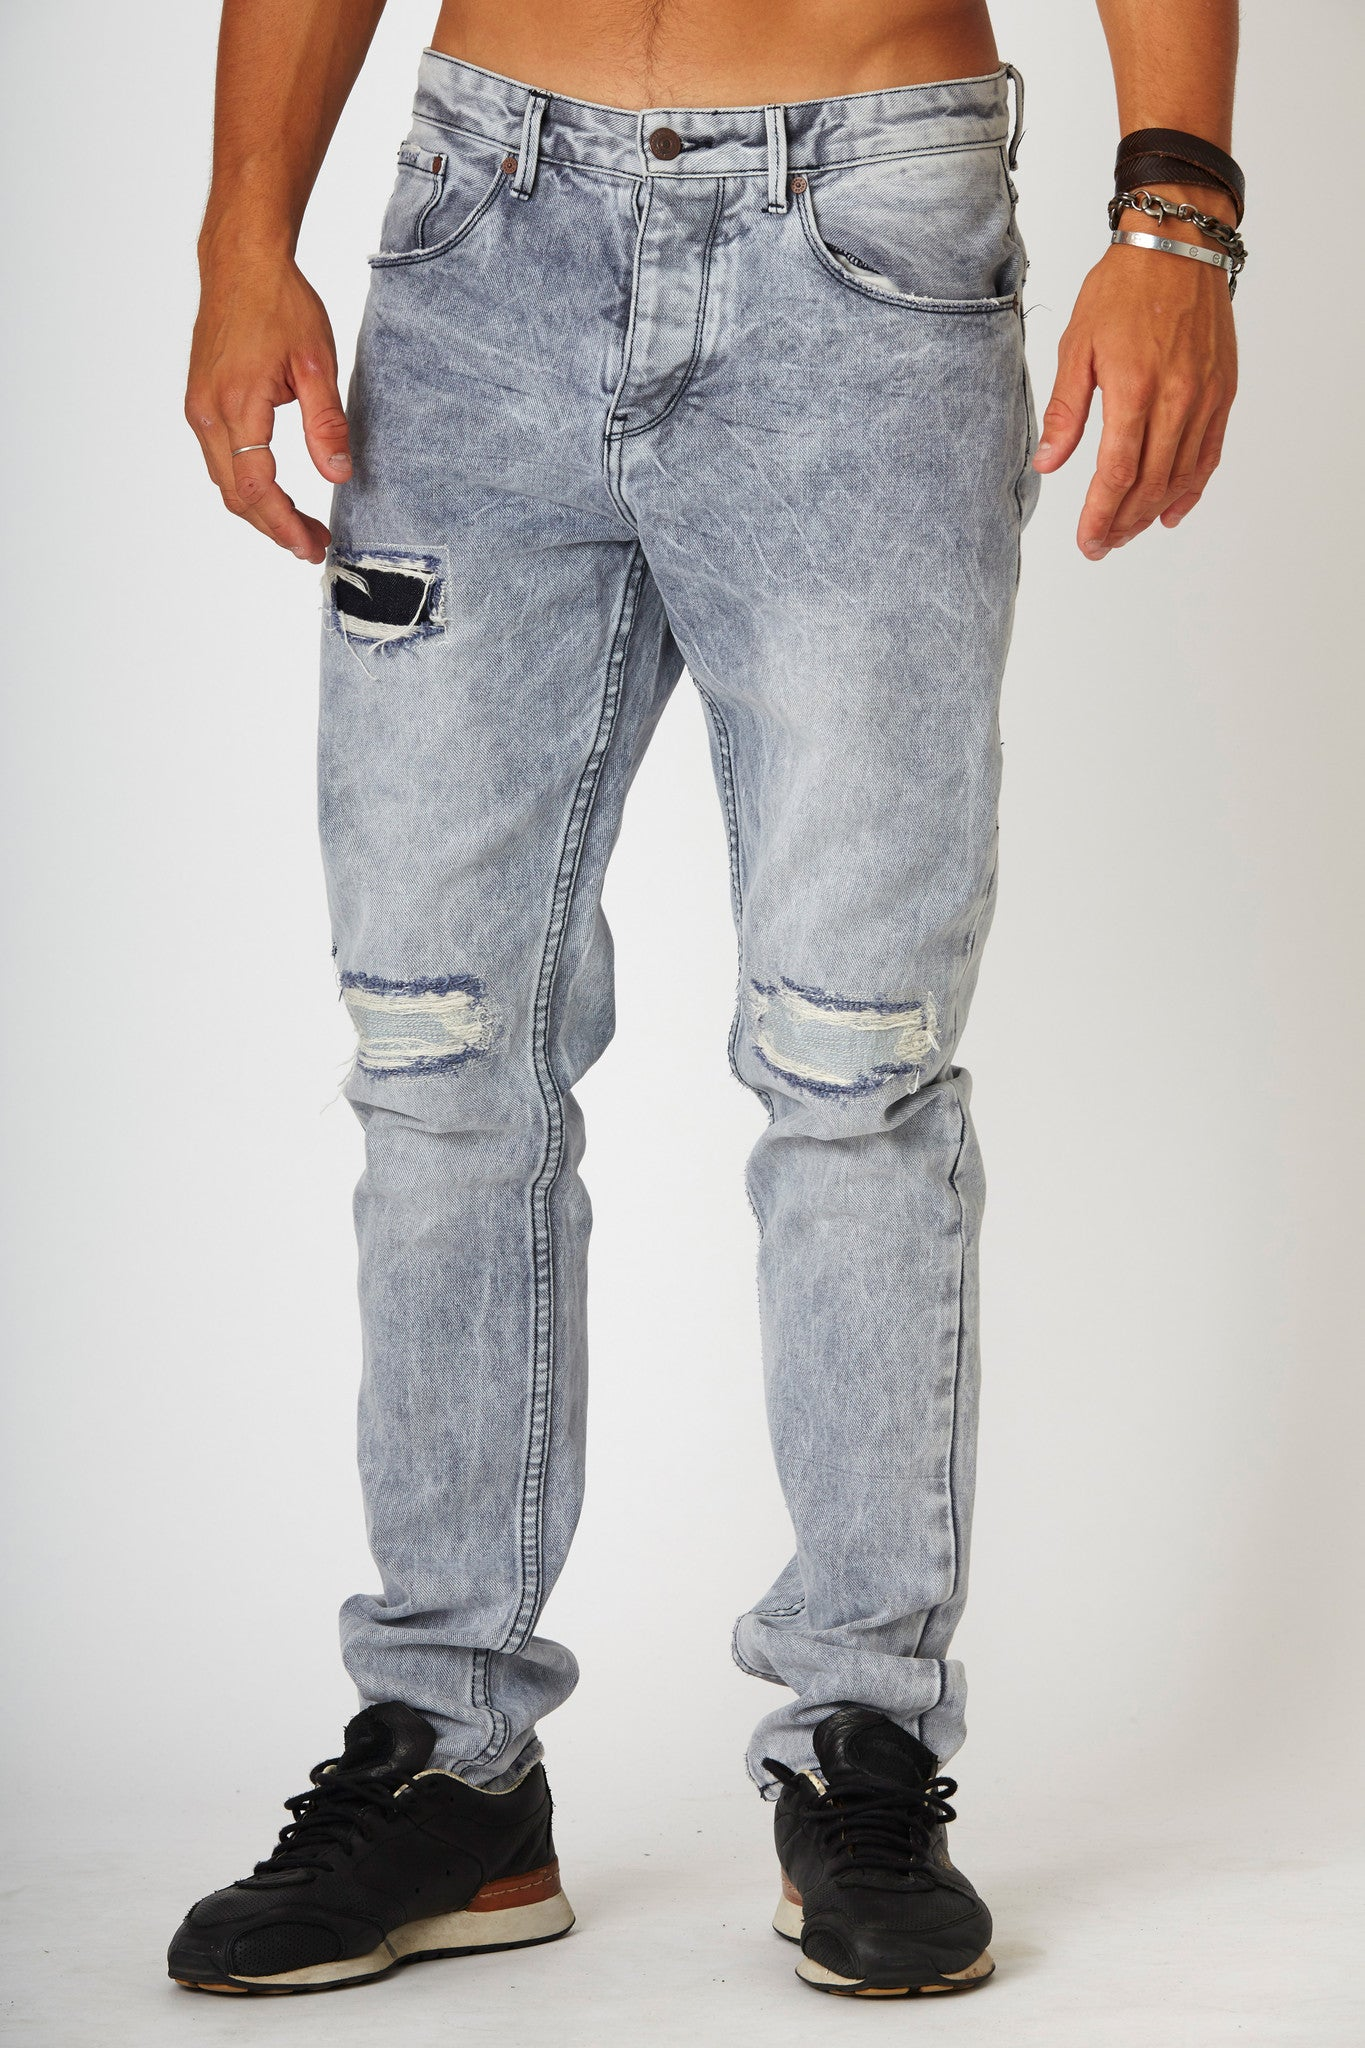 #2A23 Straight Rigid Arctic 3 Blue - denimcolab